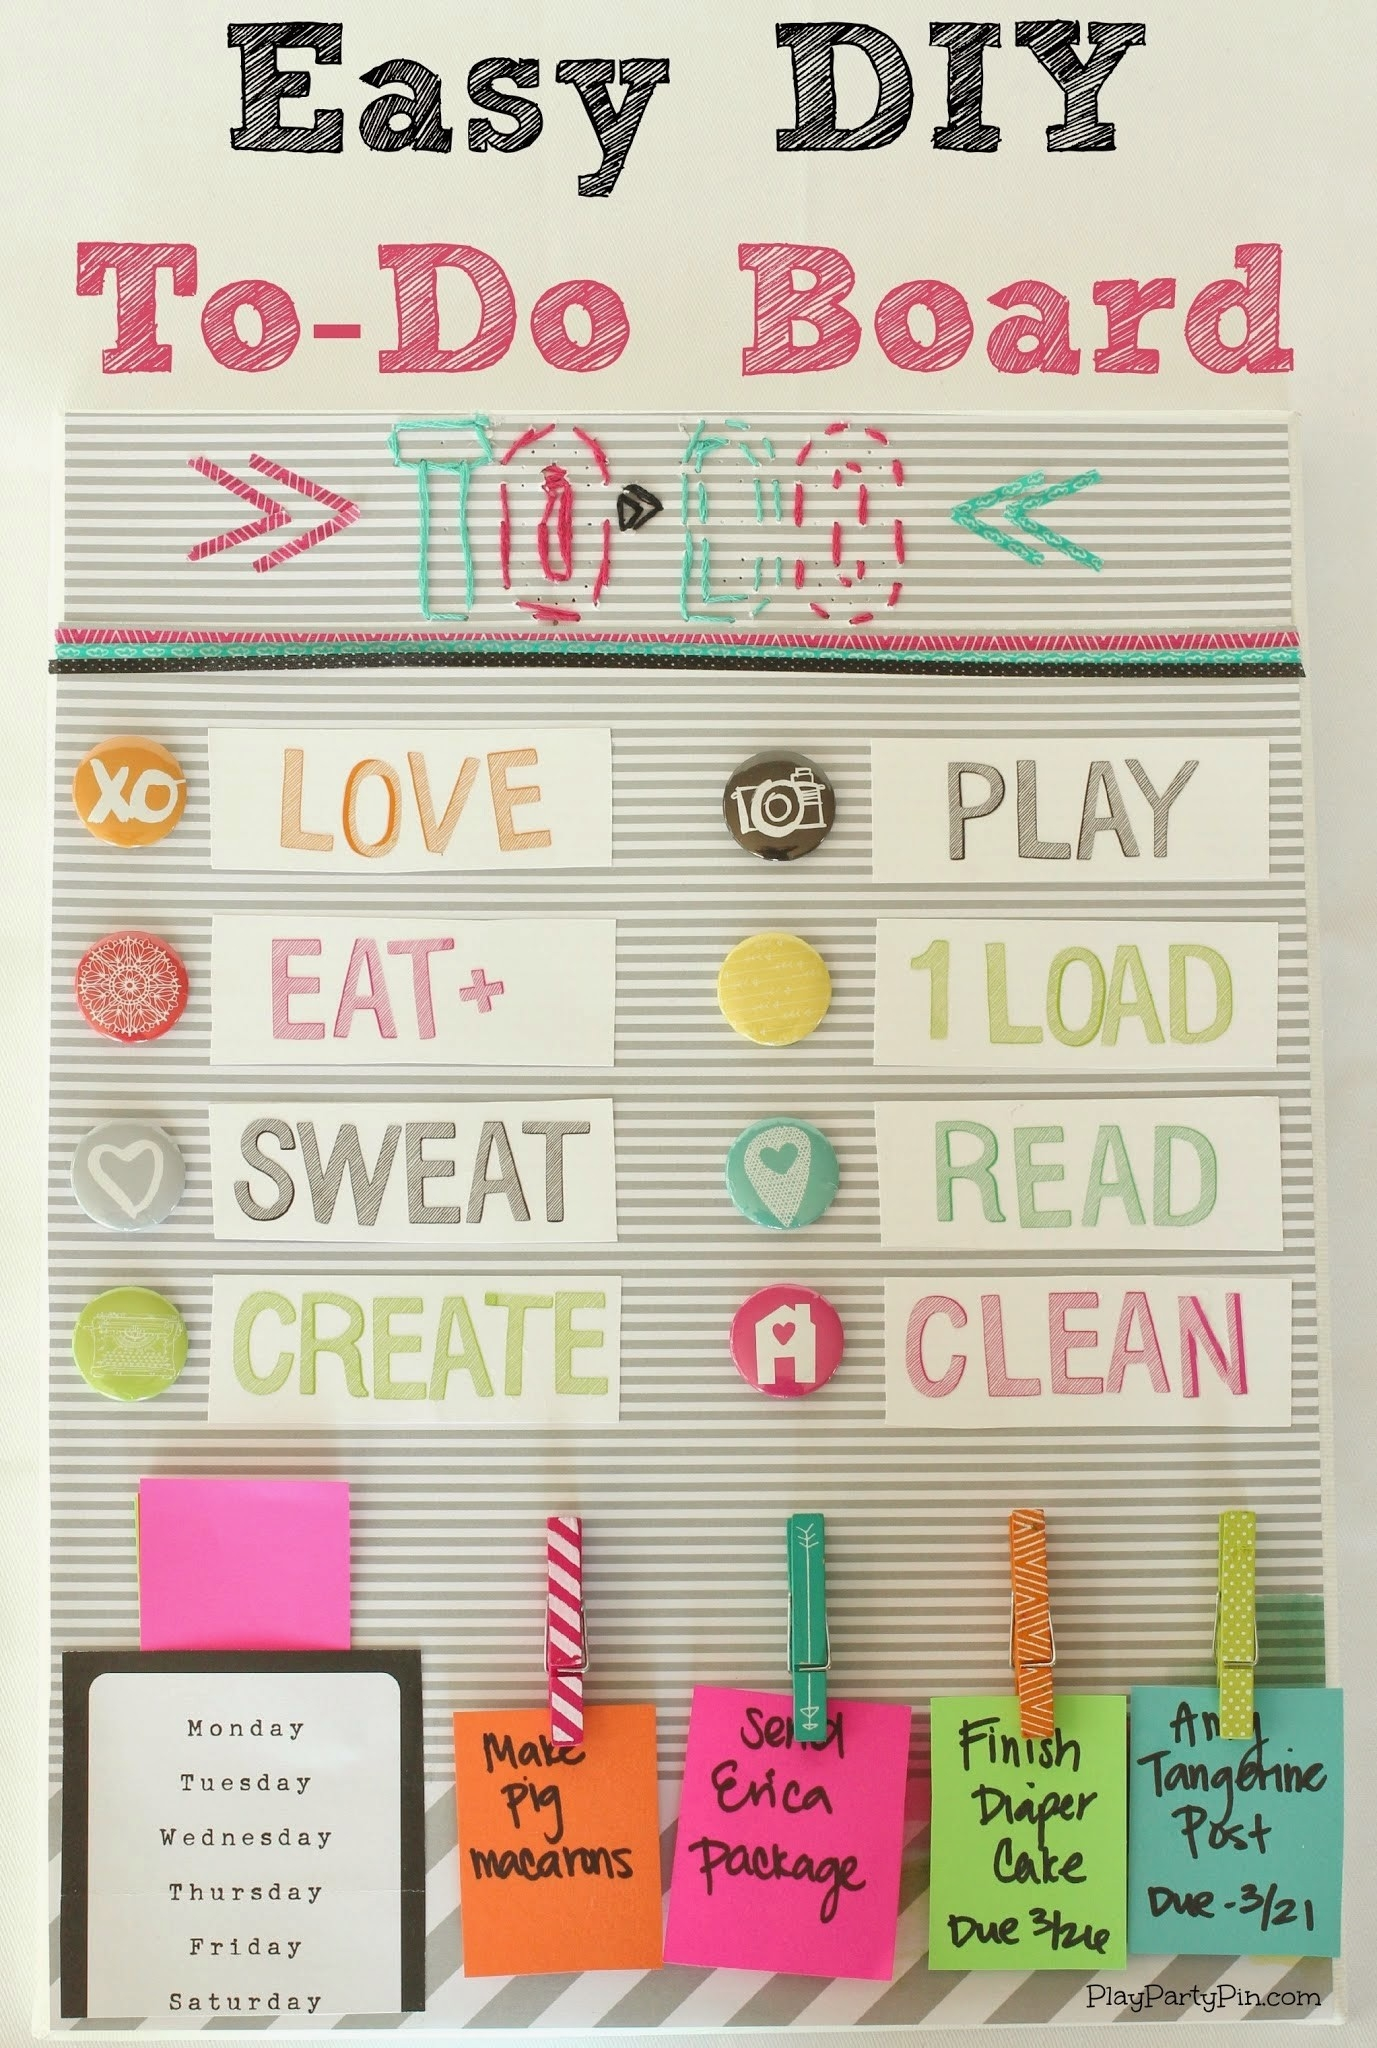 I Love This Fun Idea From Playpartypin Instead Of A To-Do List regarding Cute To Do List Ideas 21451